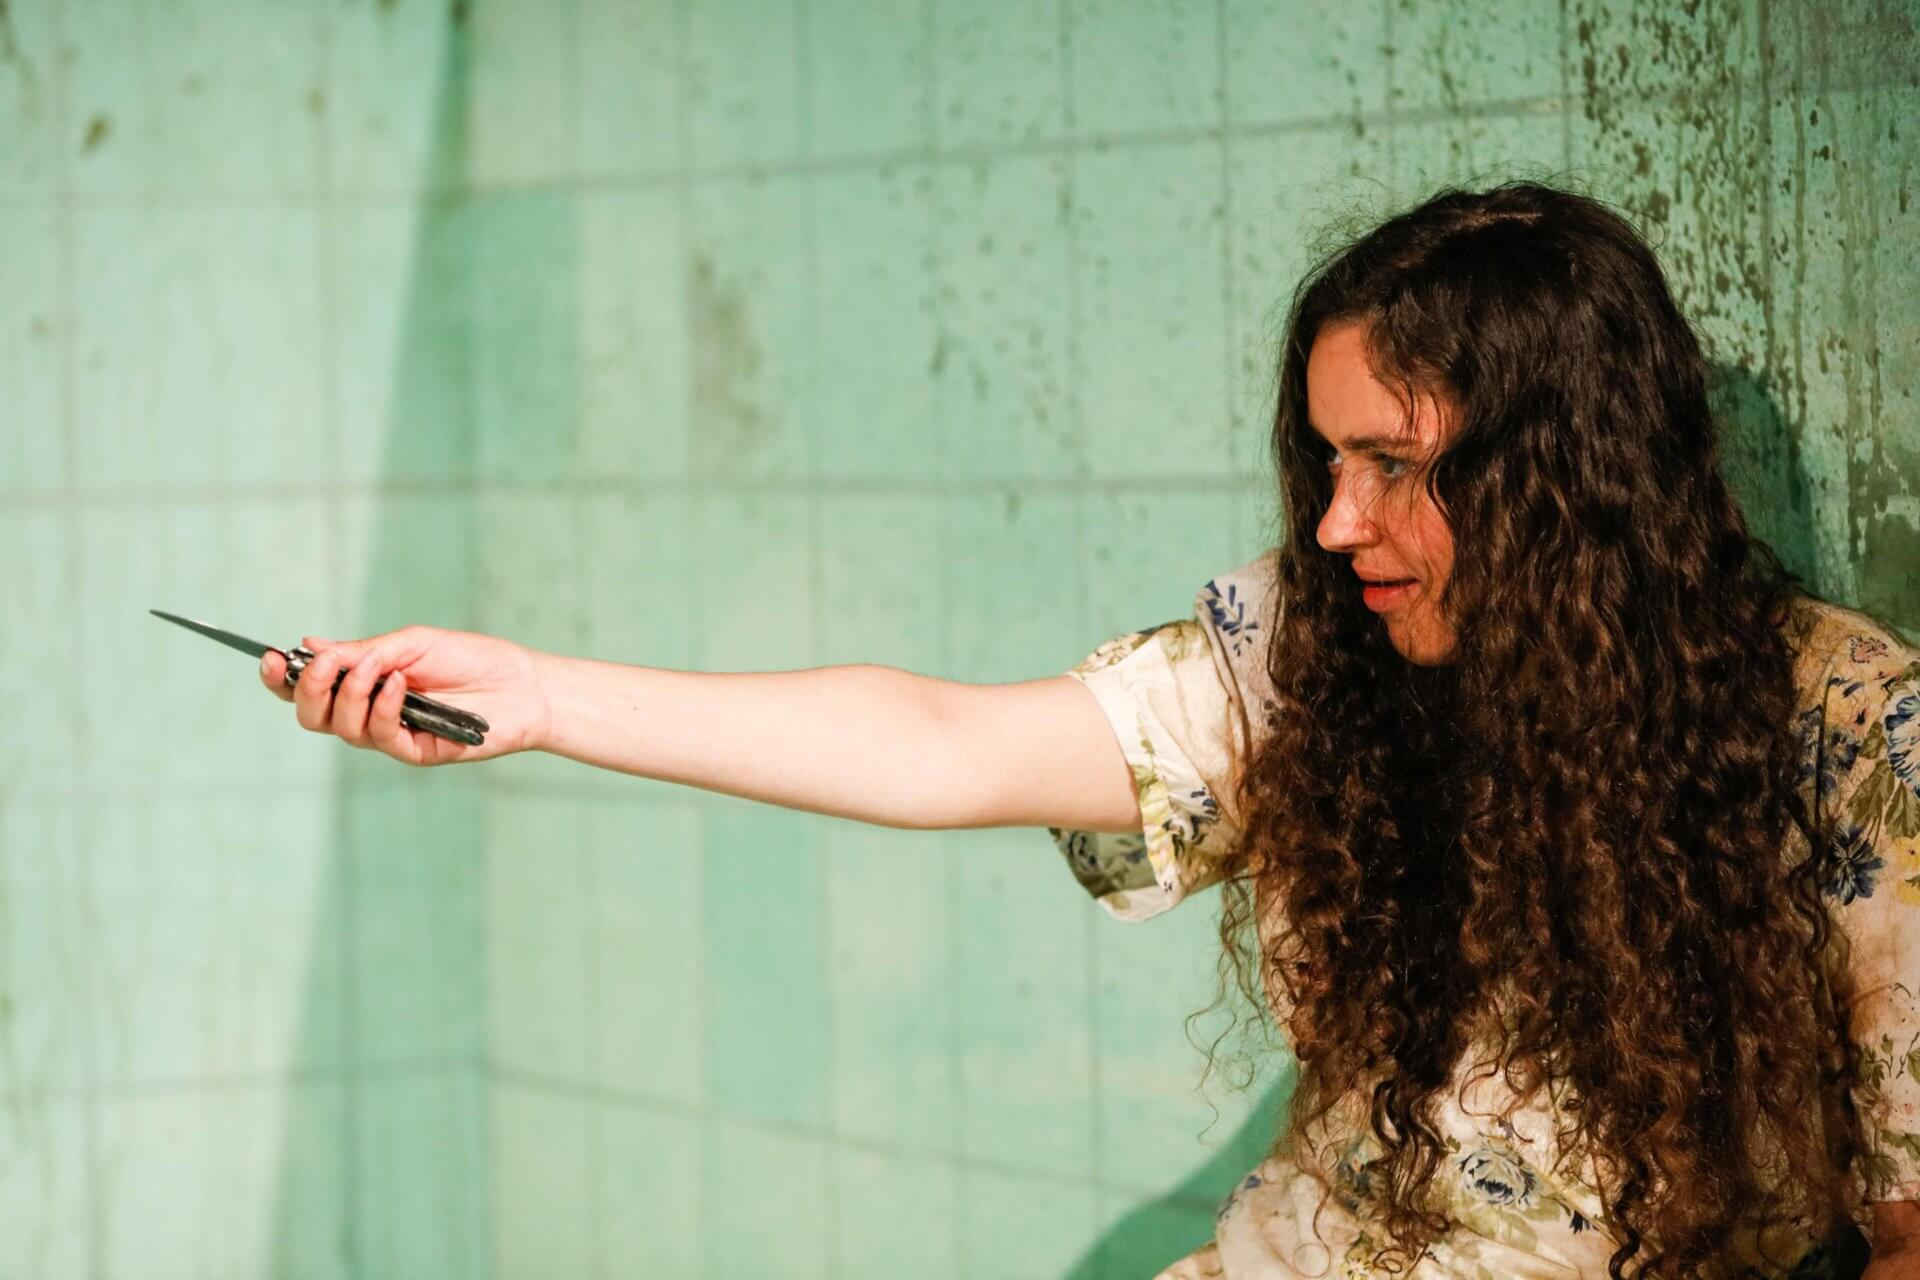 Unmissable new theatre at RCS. A performer with long brown hair stands against a tiled wall with a knife outstretched in their hand